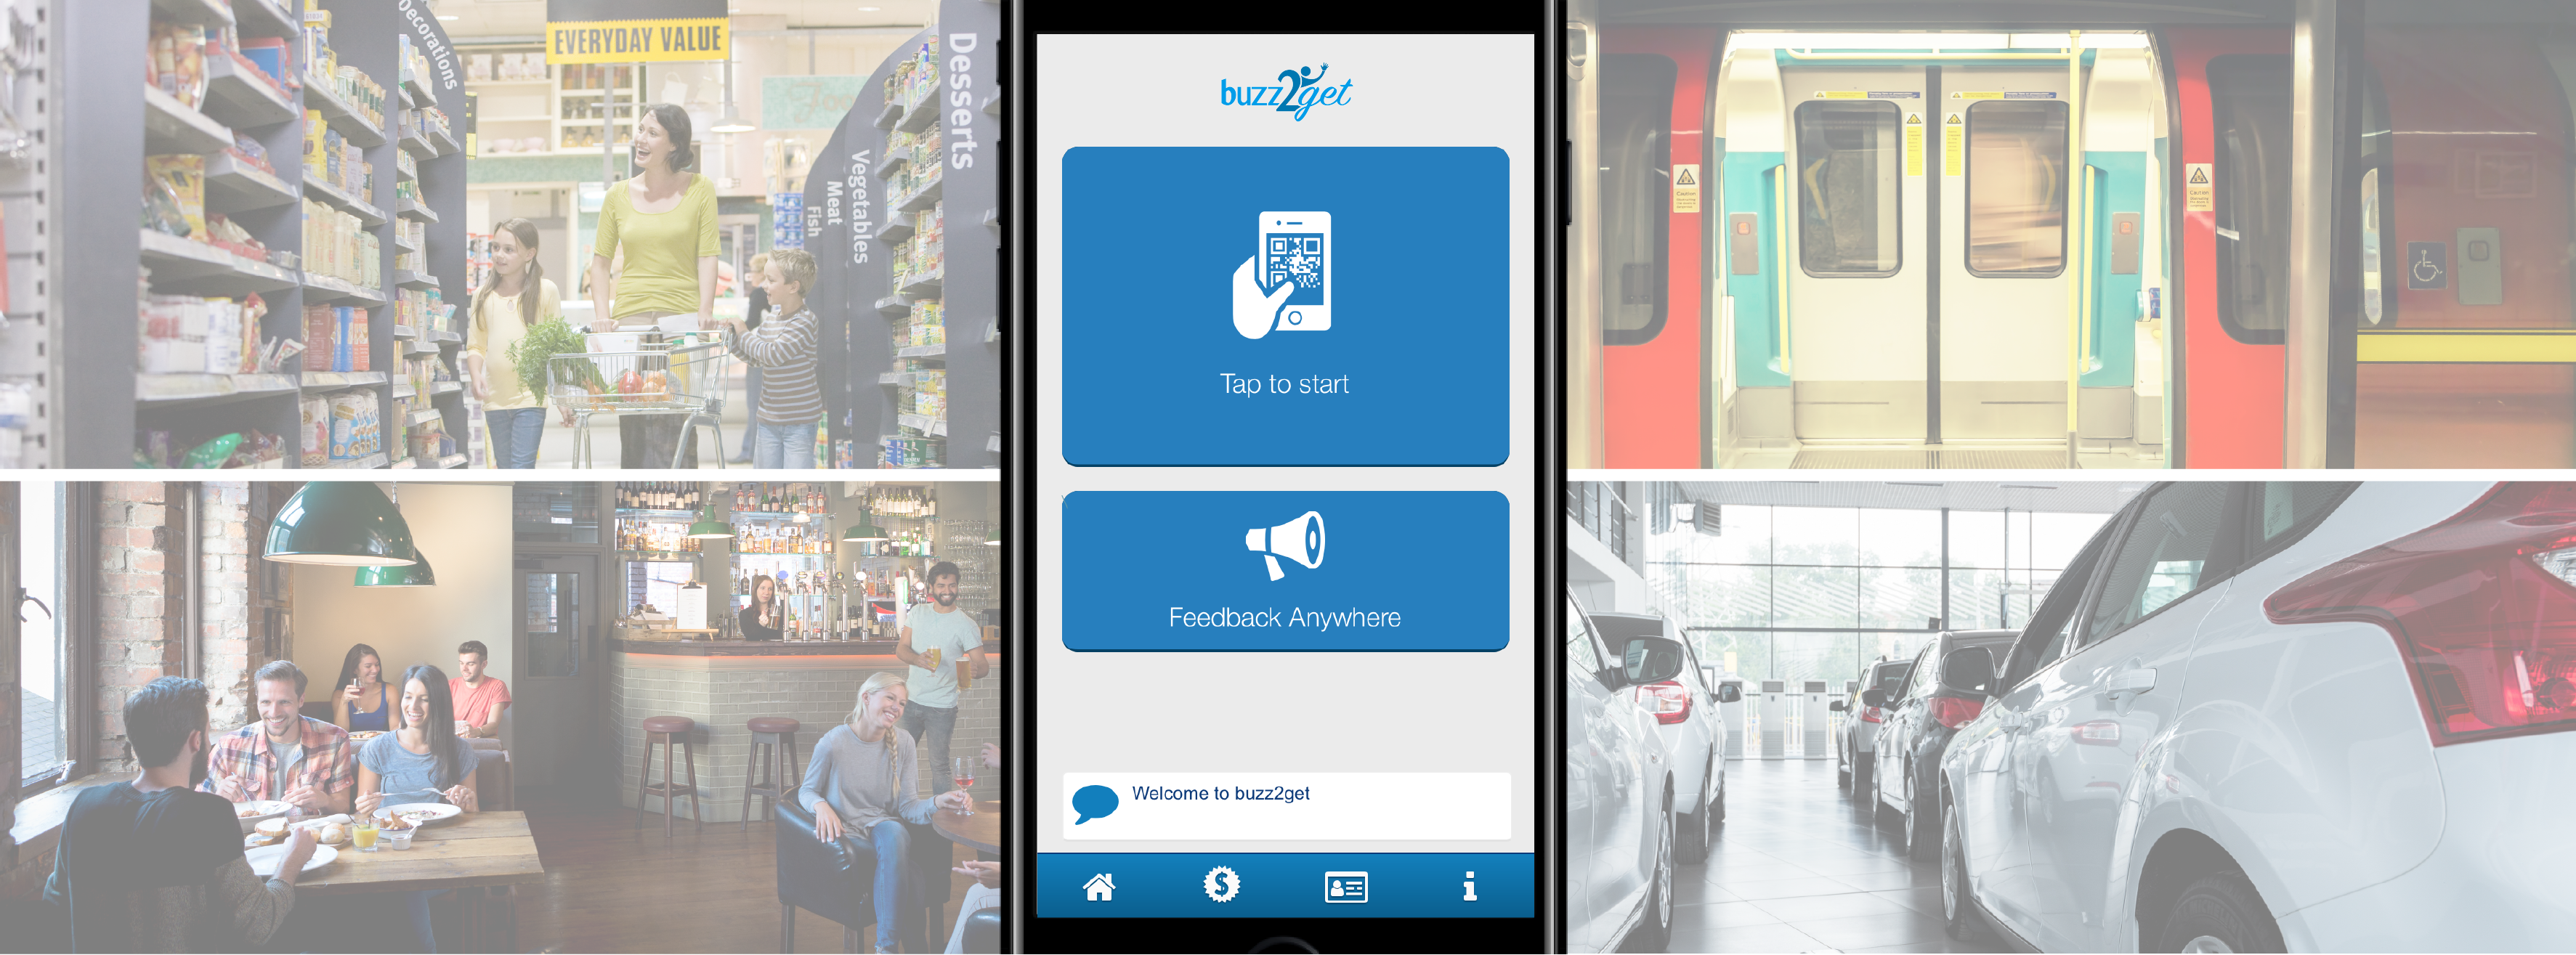 Geniusin Ltd launches buzz2get – a smartphone app for instant service